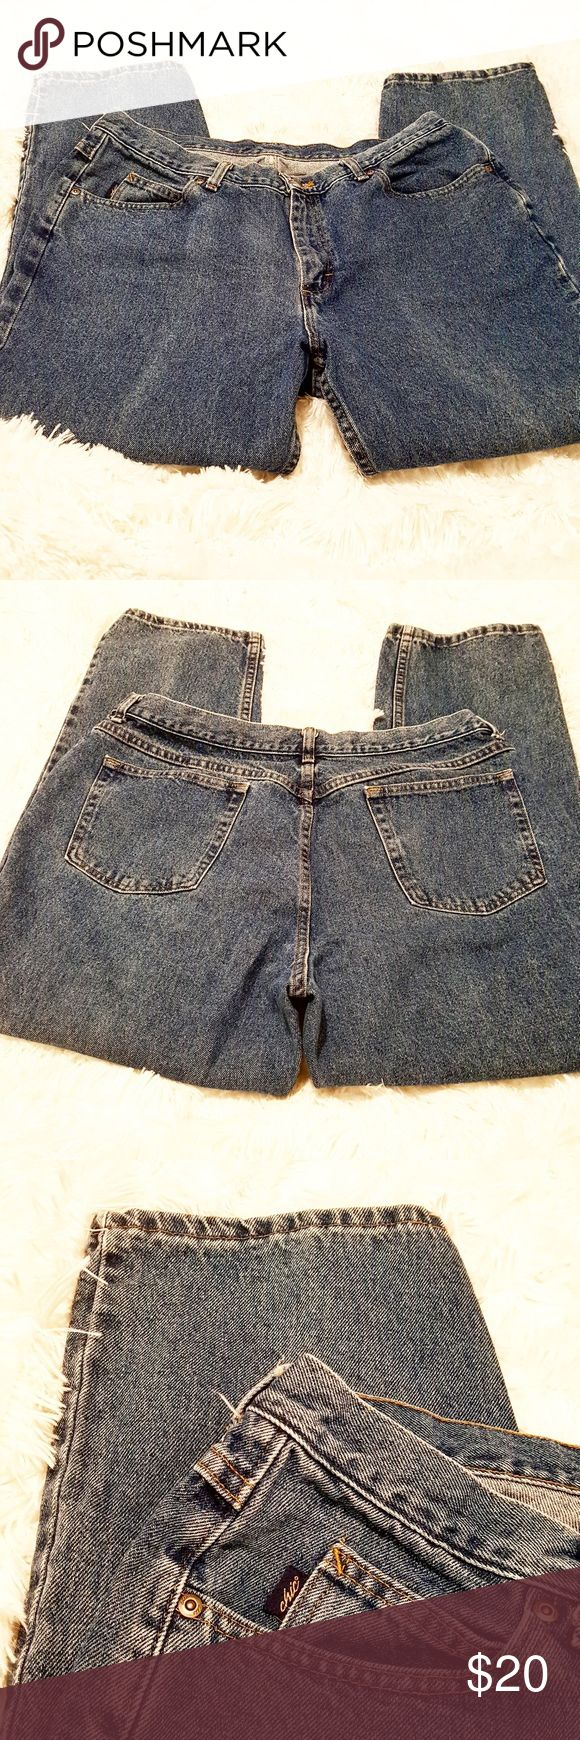 Chic Medium Washed High Waisted Tapered Mom Jeans Chic Medium Washed High Waisted Tapered Mom Jeans Chic Jeans